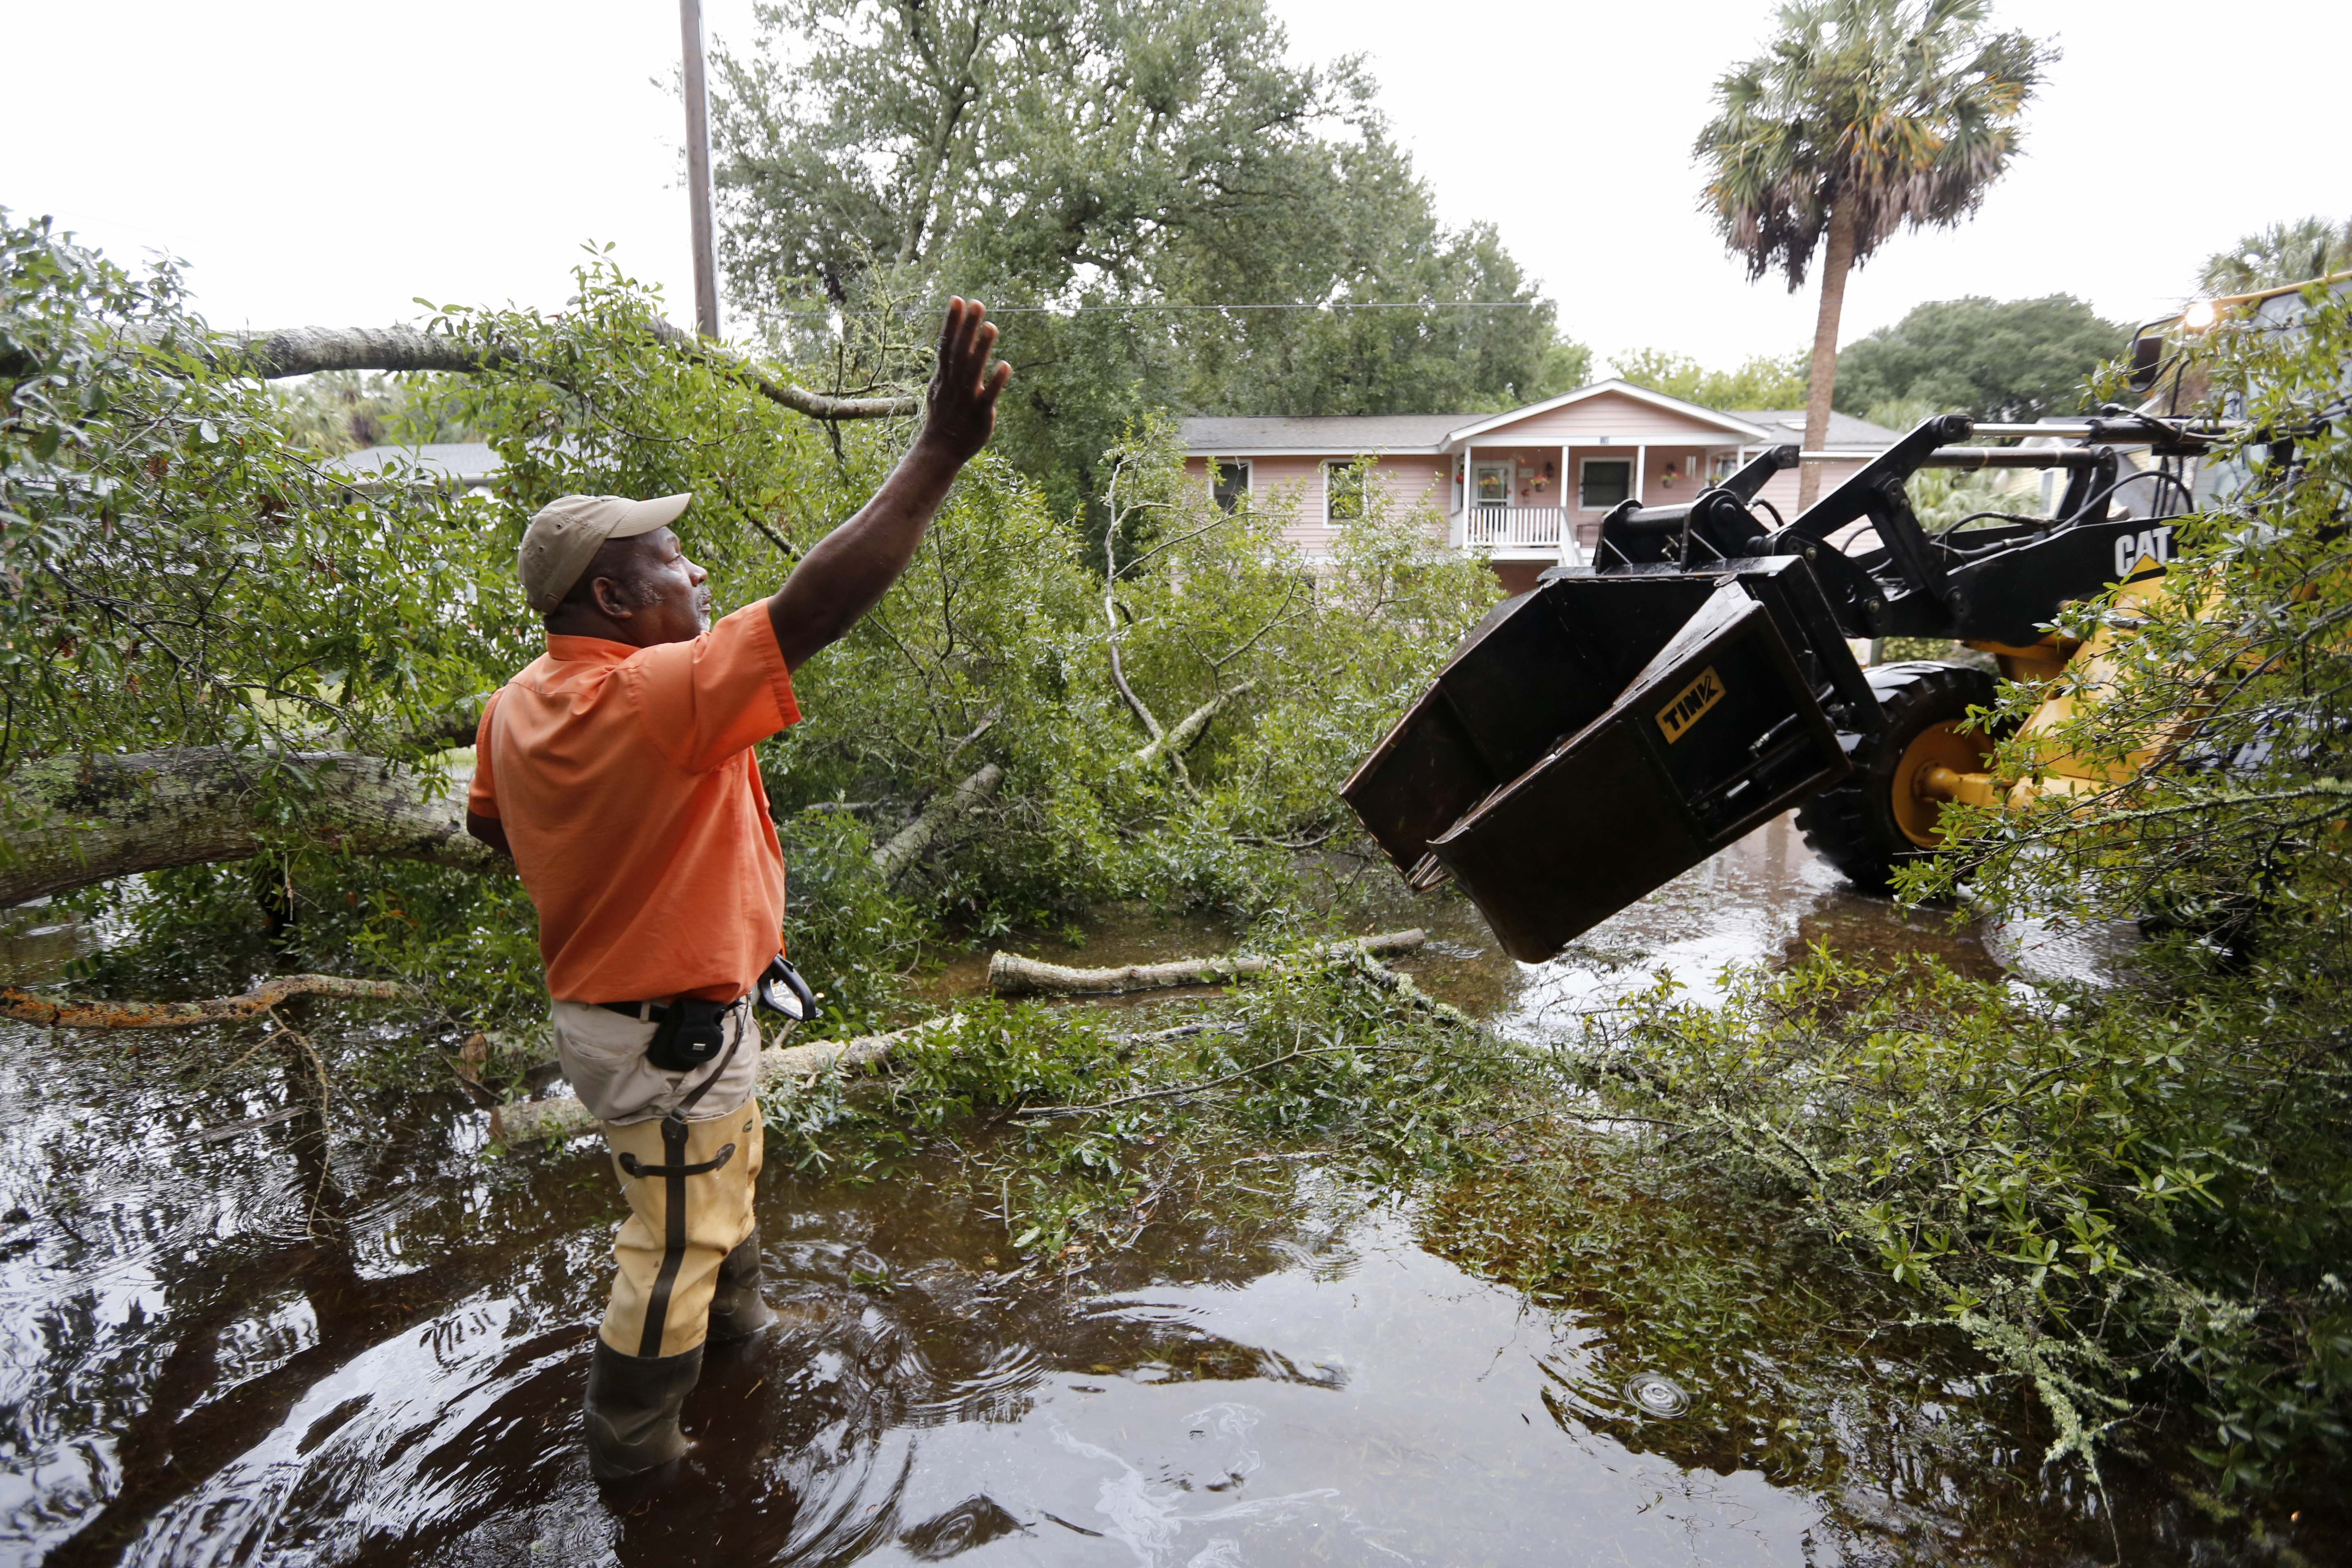 George Myers with the city of Isle of Palms directs equipment in on 23rd Ave. to clear the road after heavy rains fell on the Isle of Palms, S.C., Sunday, Oct. 4, 2015